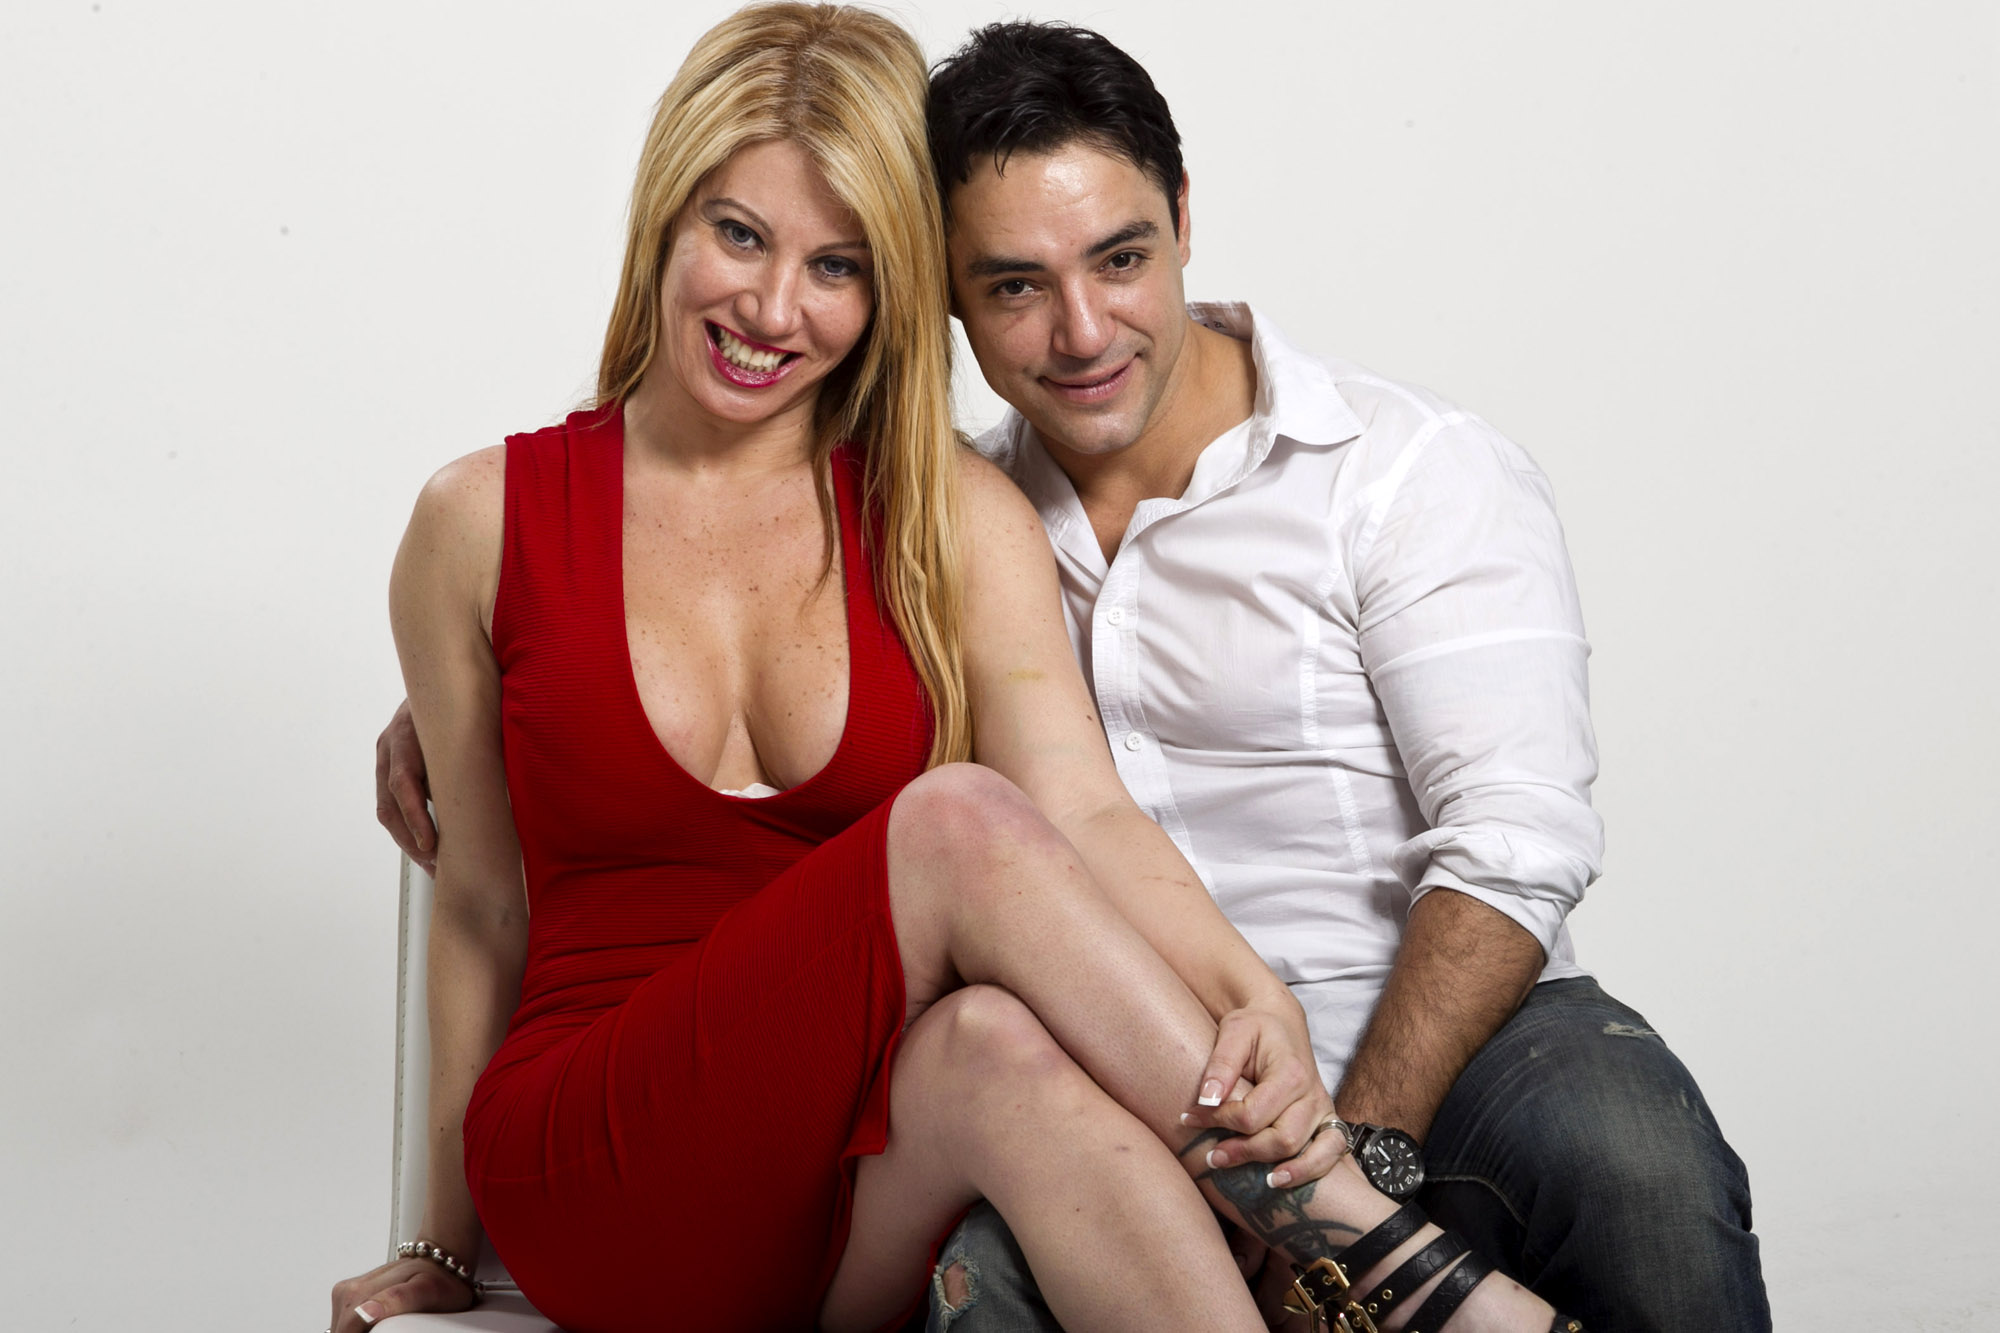 Meet the married couple who gives guys hands-on sex lessons